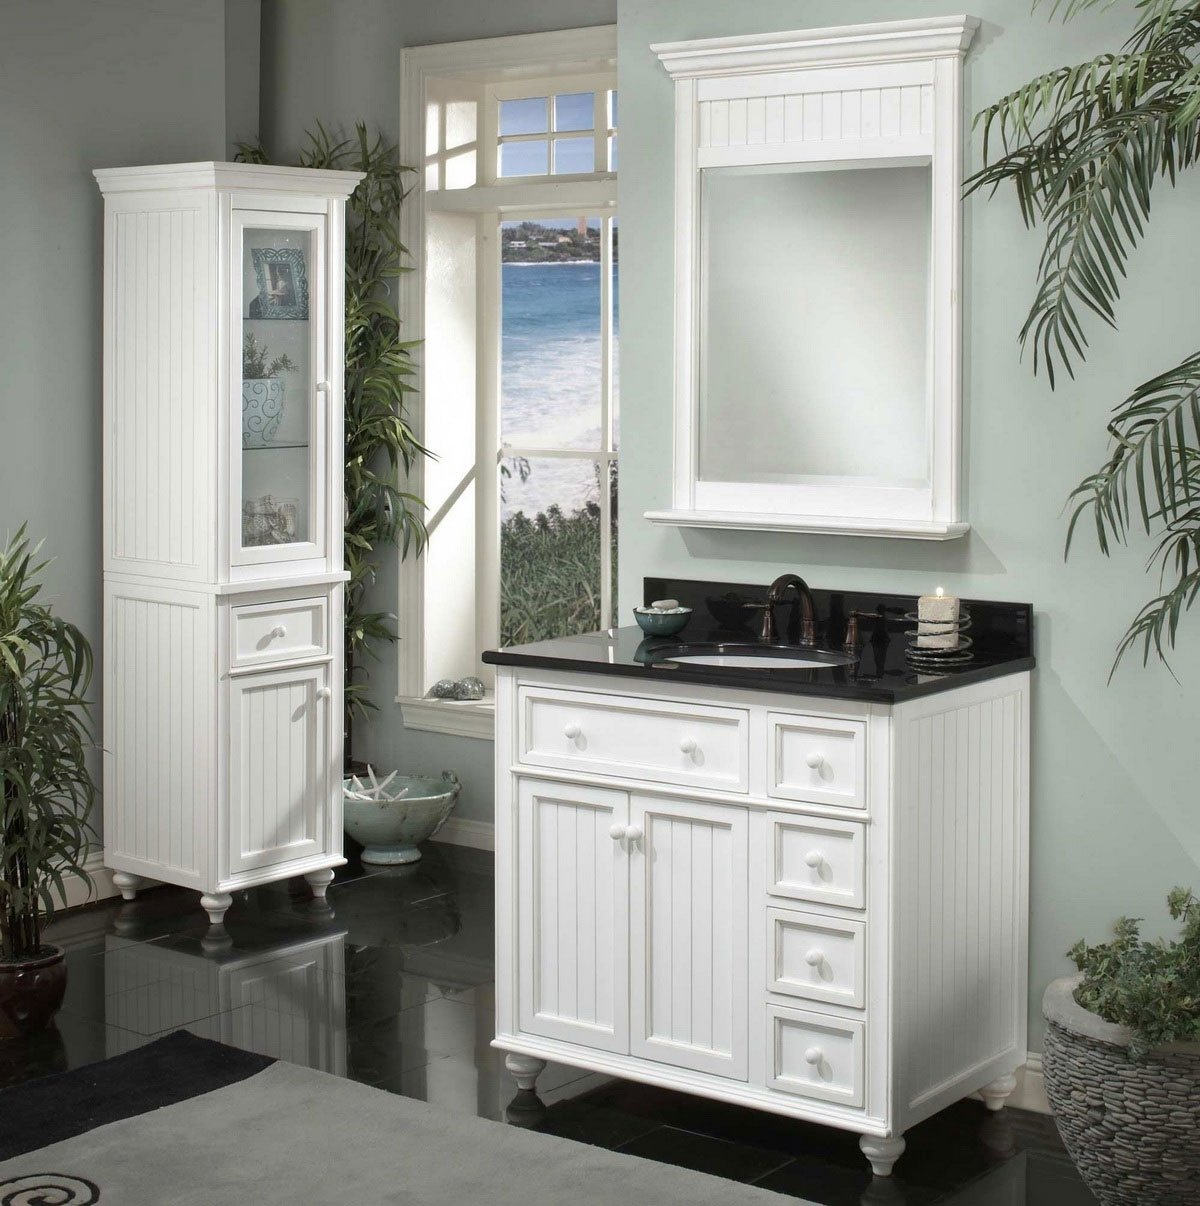 10 Attractive Bathroom Cabinet Ideas For Small Bathroom modern white small bathroom vanities decobizz